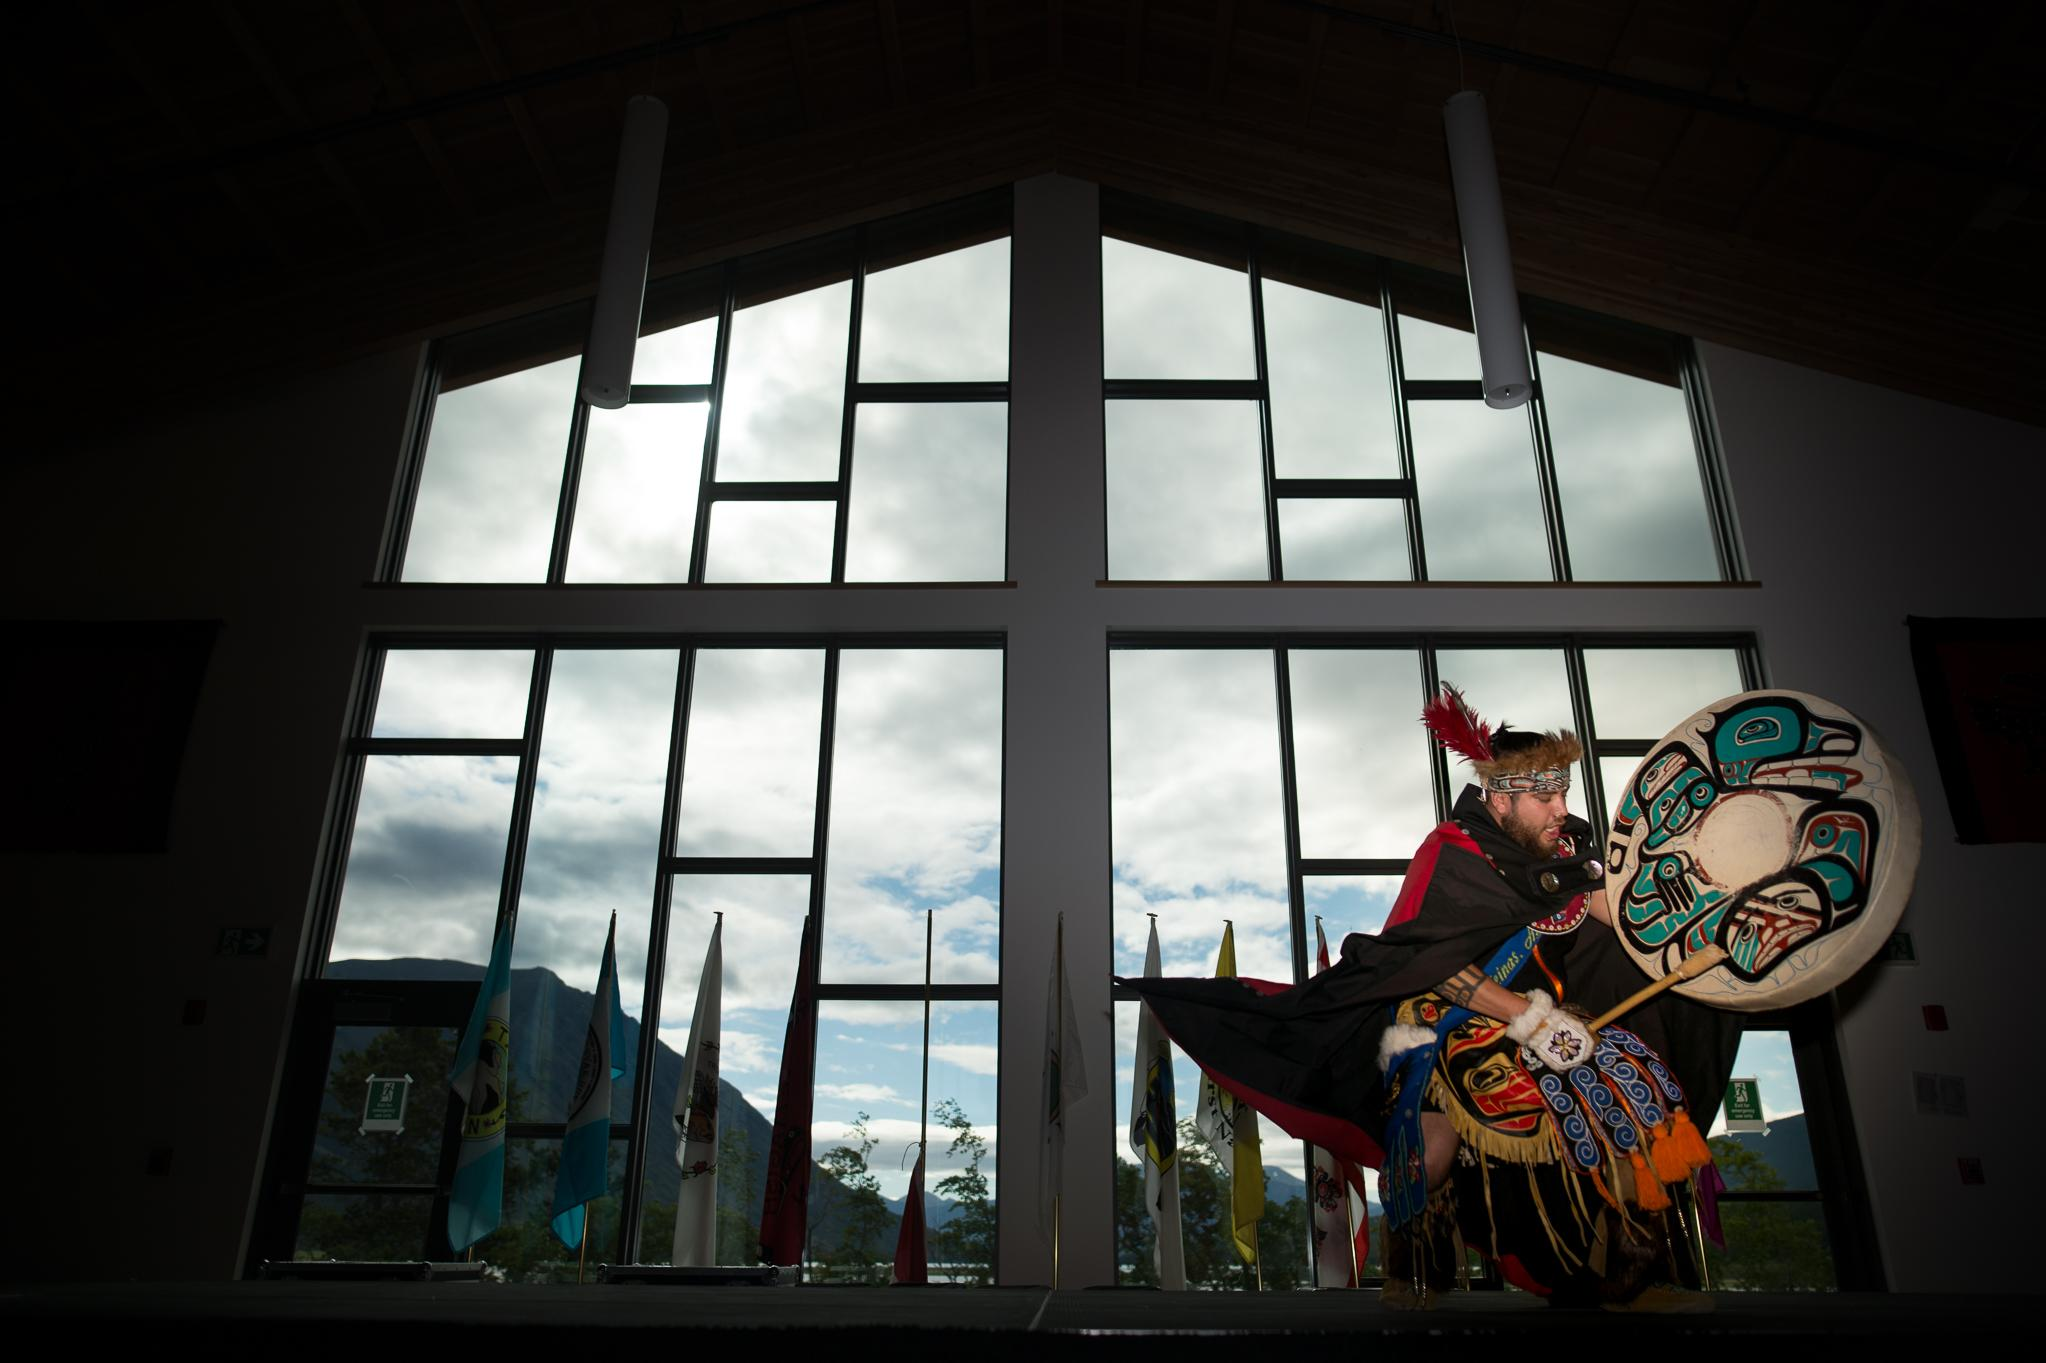 The Carcross/Tagish First Nation learning center Photo:Alistair Maitland